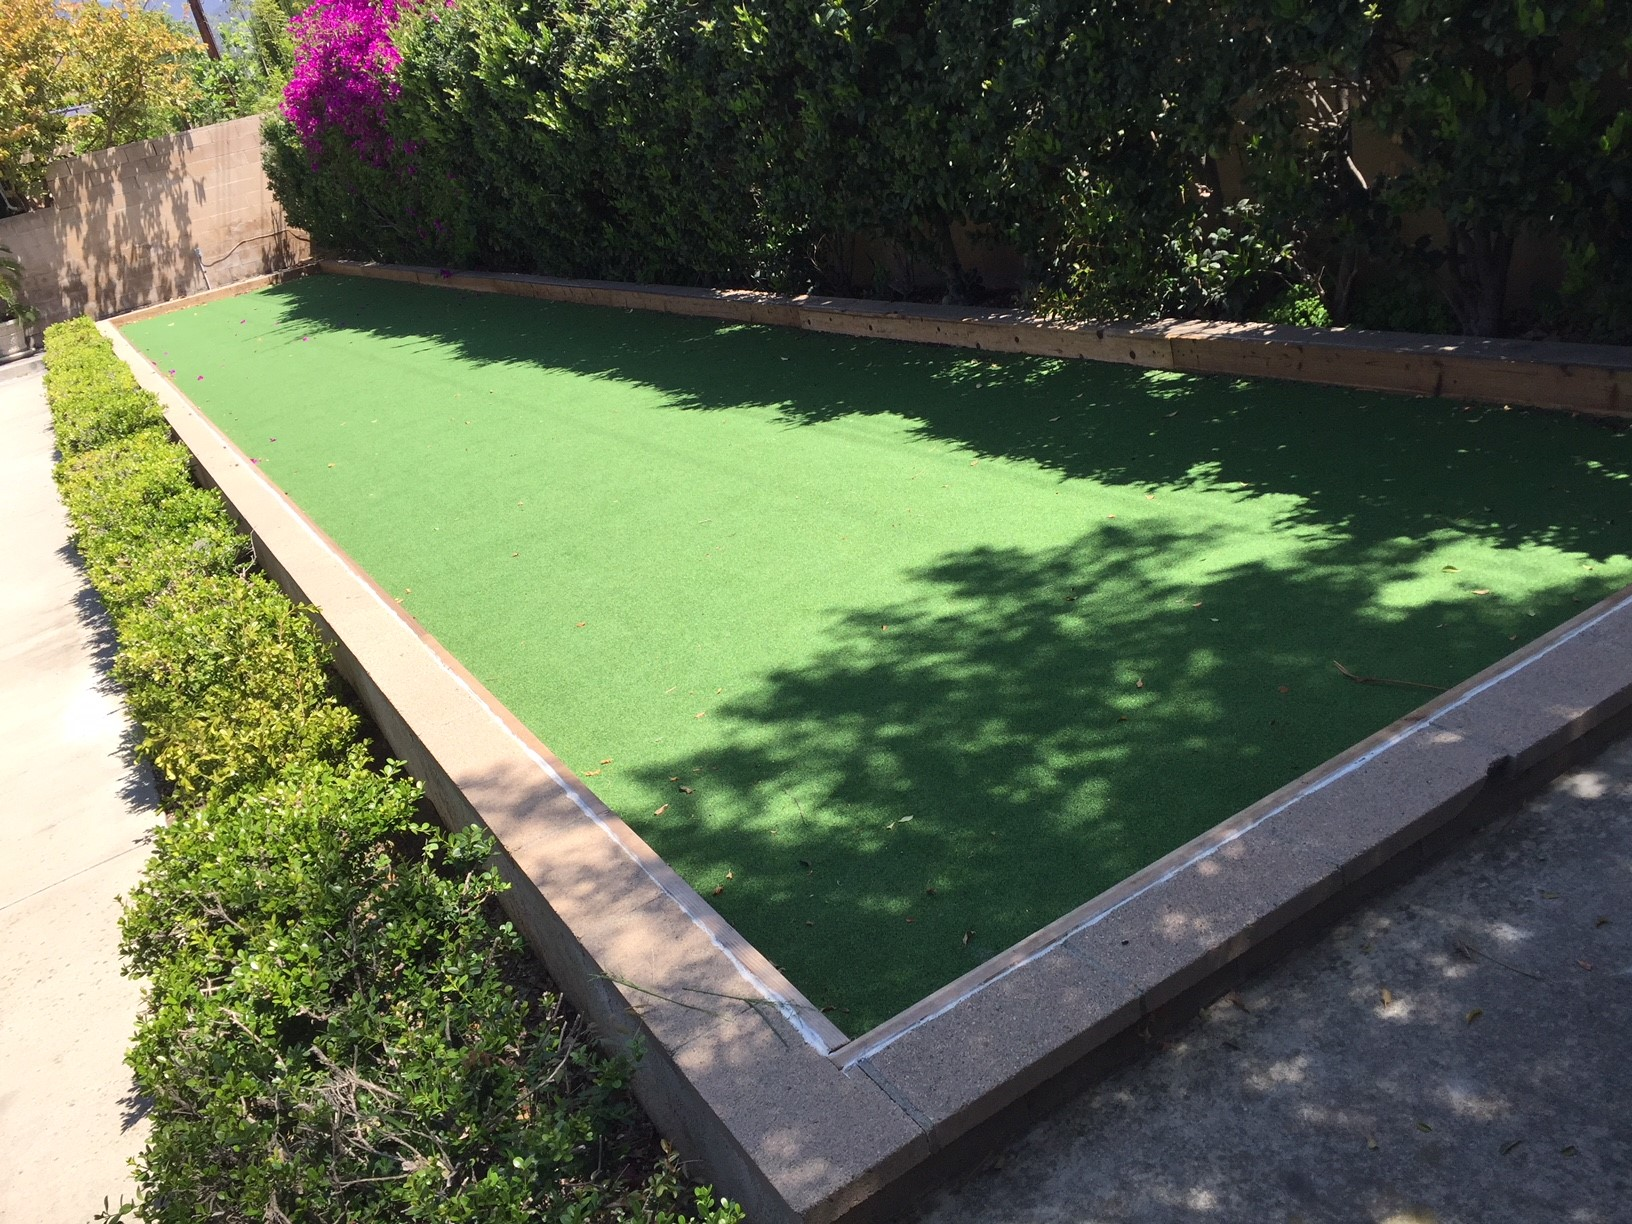 13 Small Backyard Ideas for Artificial Grass - Buy, Install and